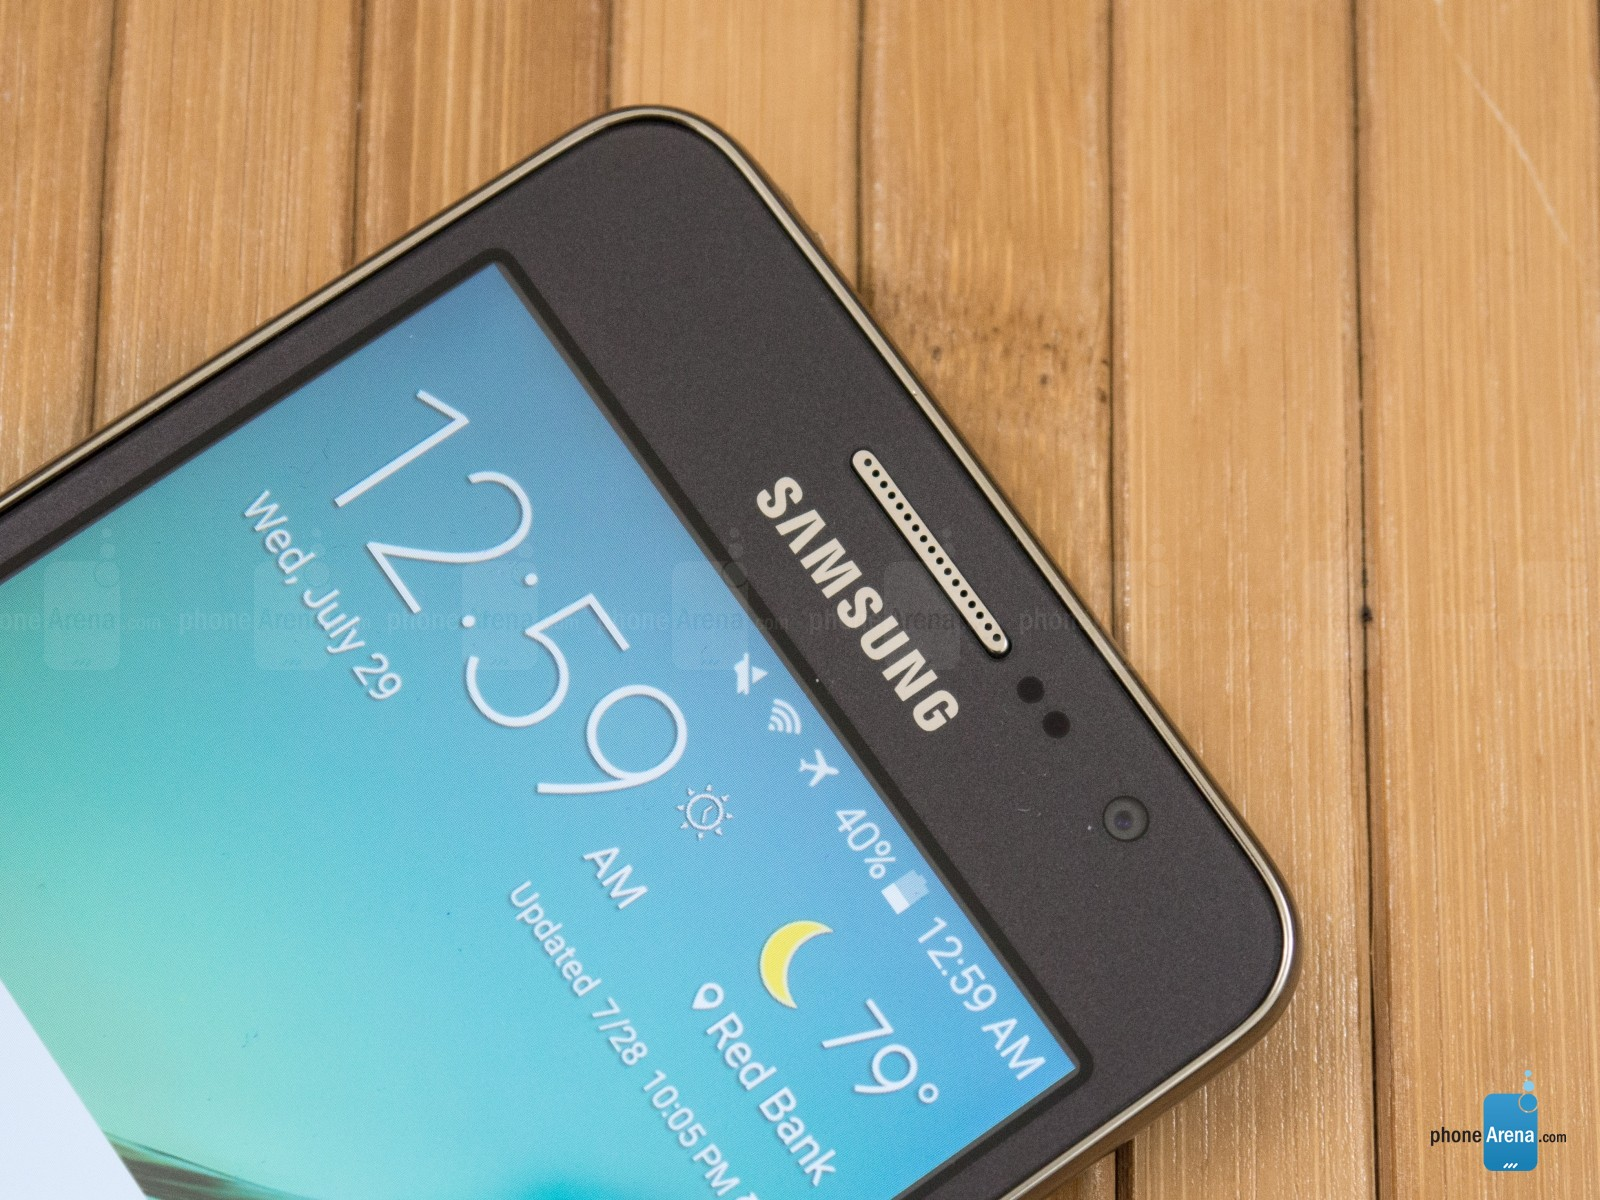 Samsung-Galaxy-Grand-Prime-Review-009